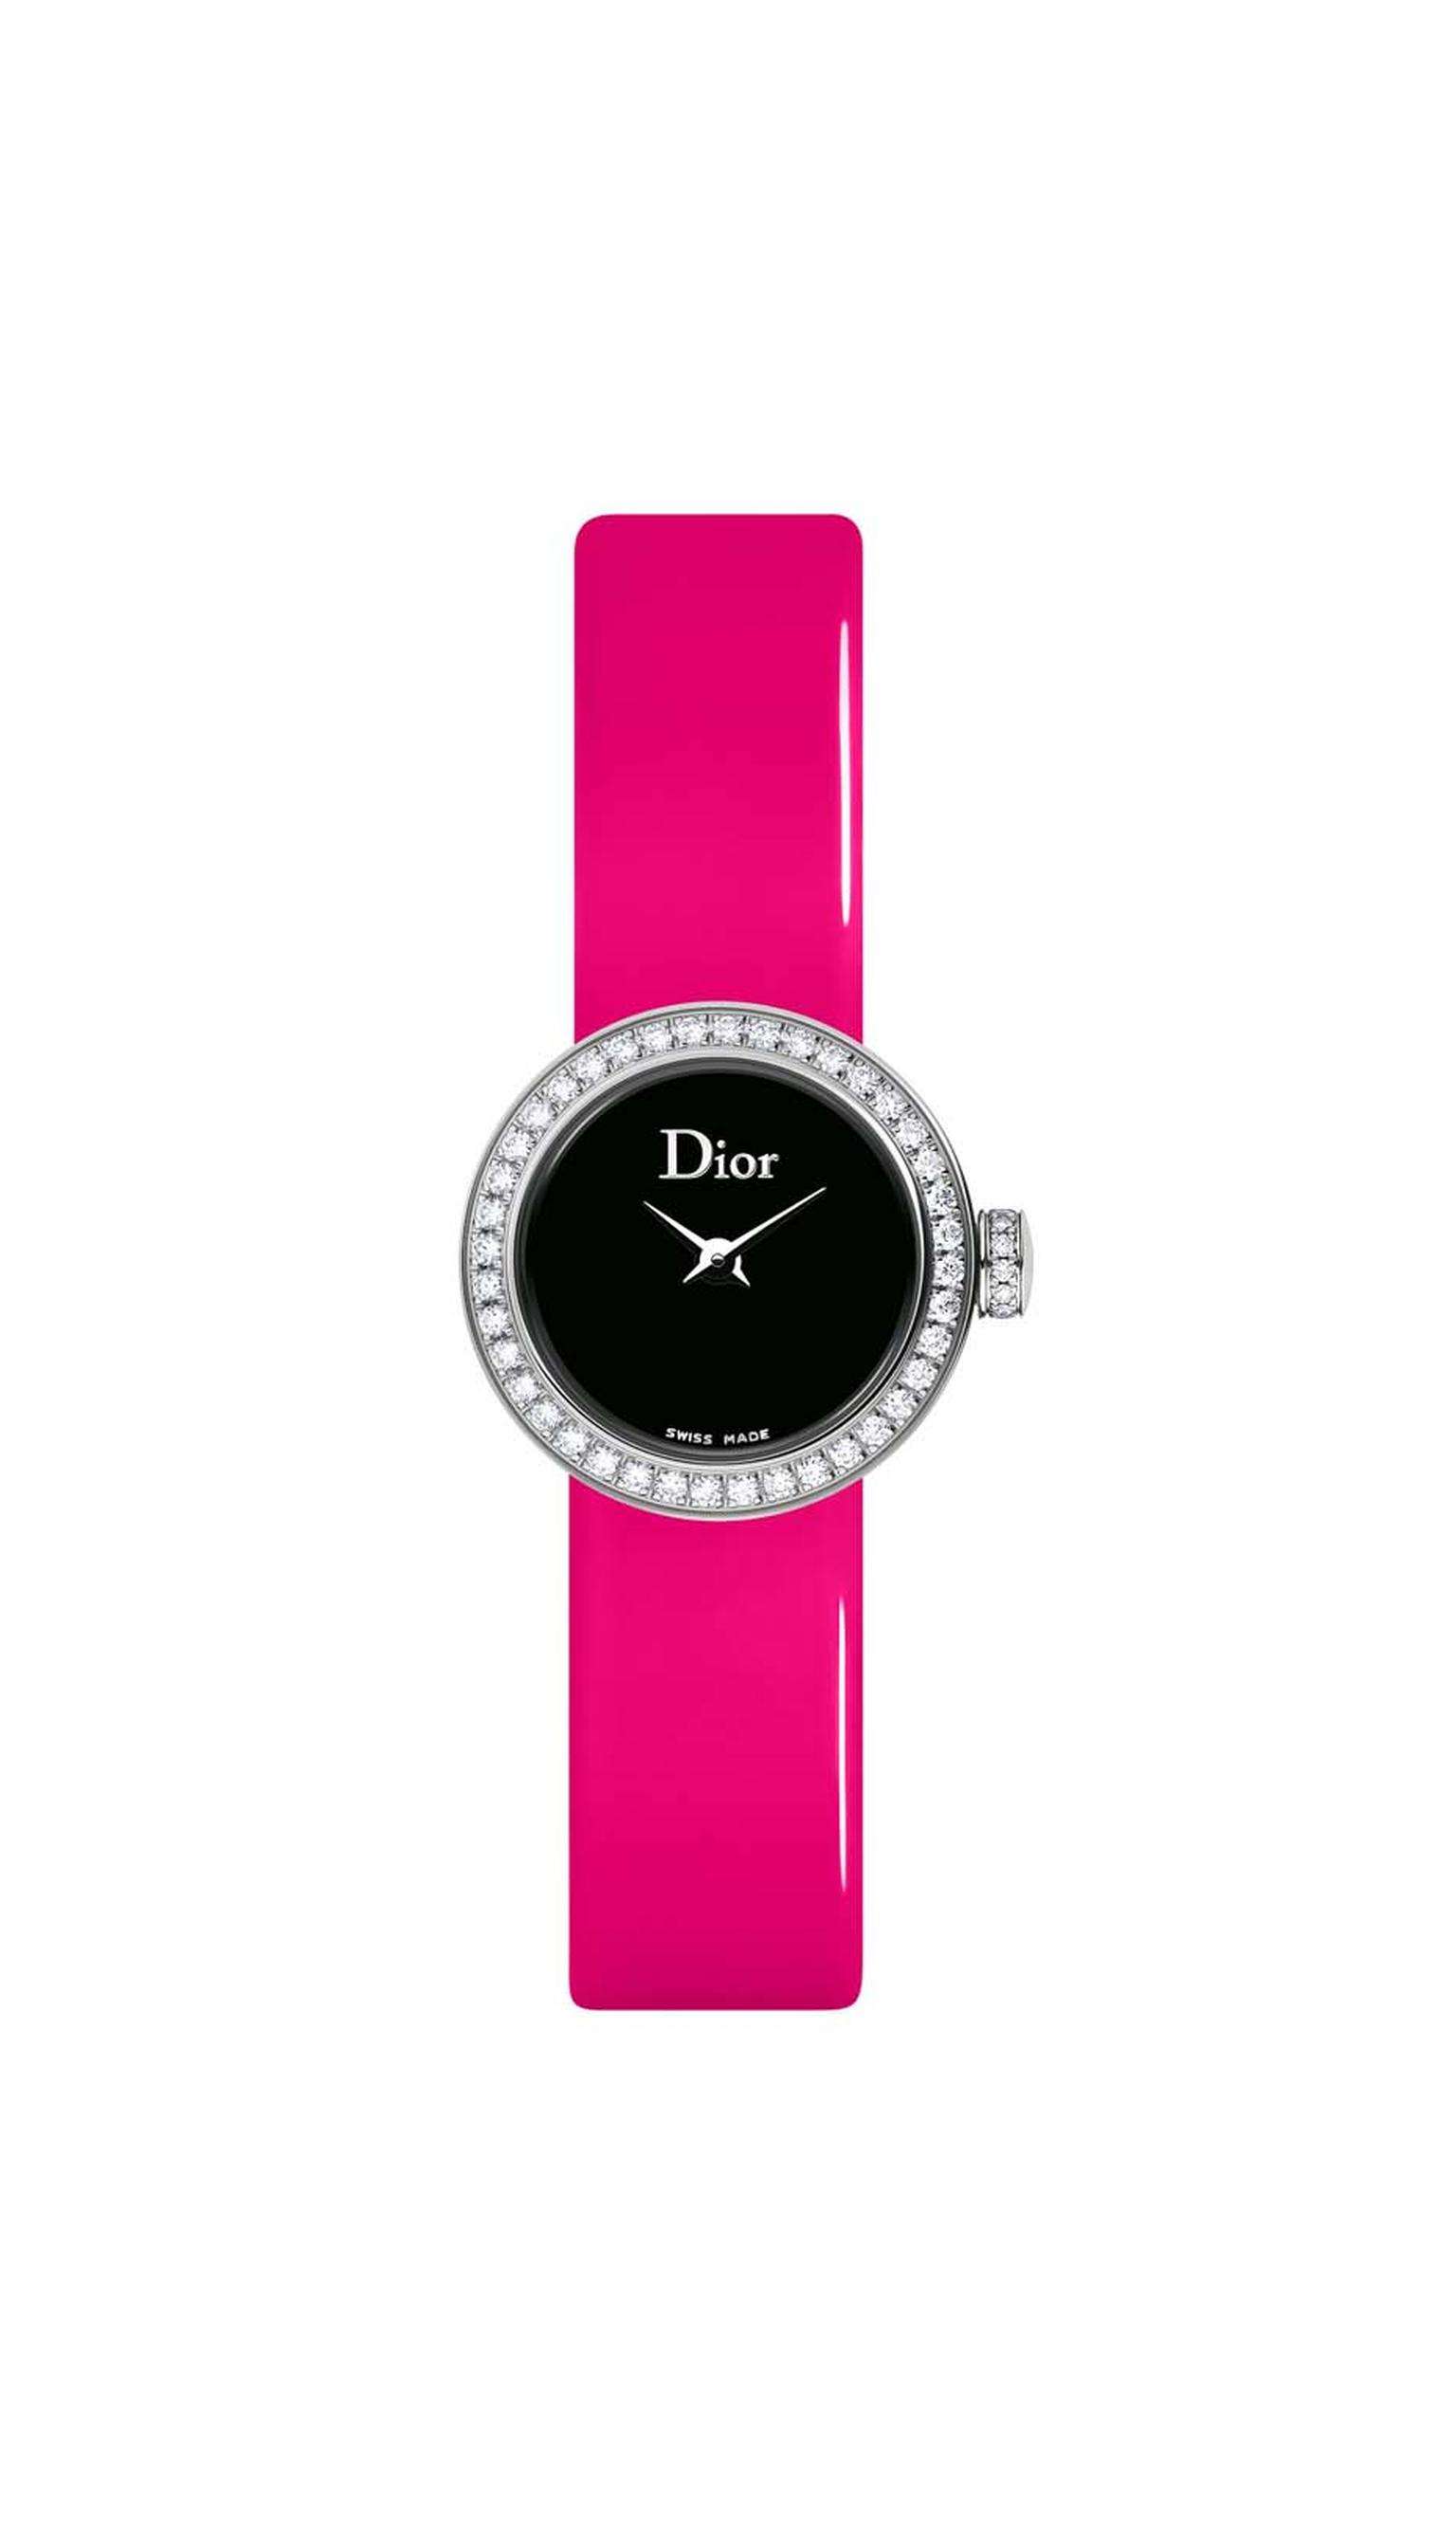 La Mini D de Dior watch with an inky black mother-of-pearl dial set alight with diamonds on the bezel and crown and a fluoro pink strap (£2,900).